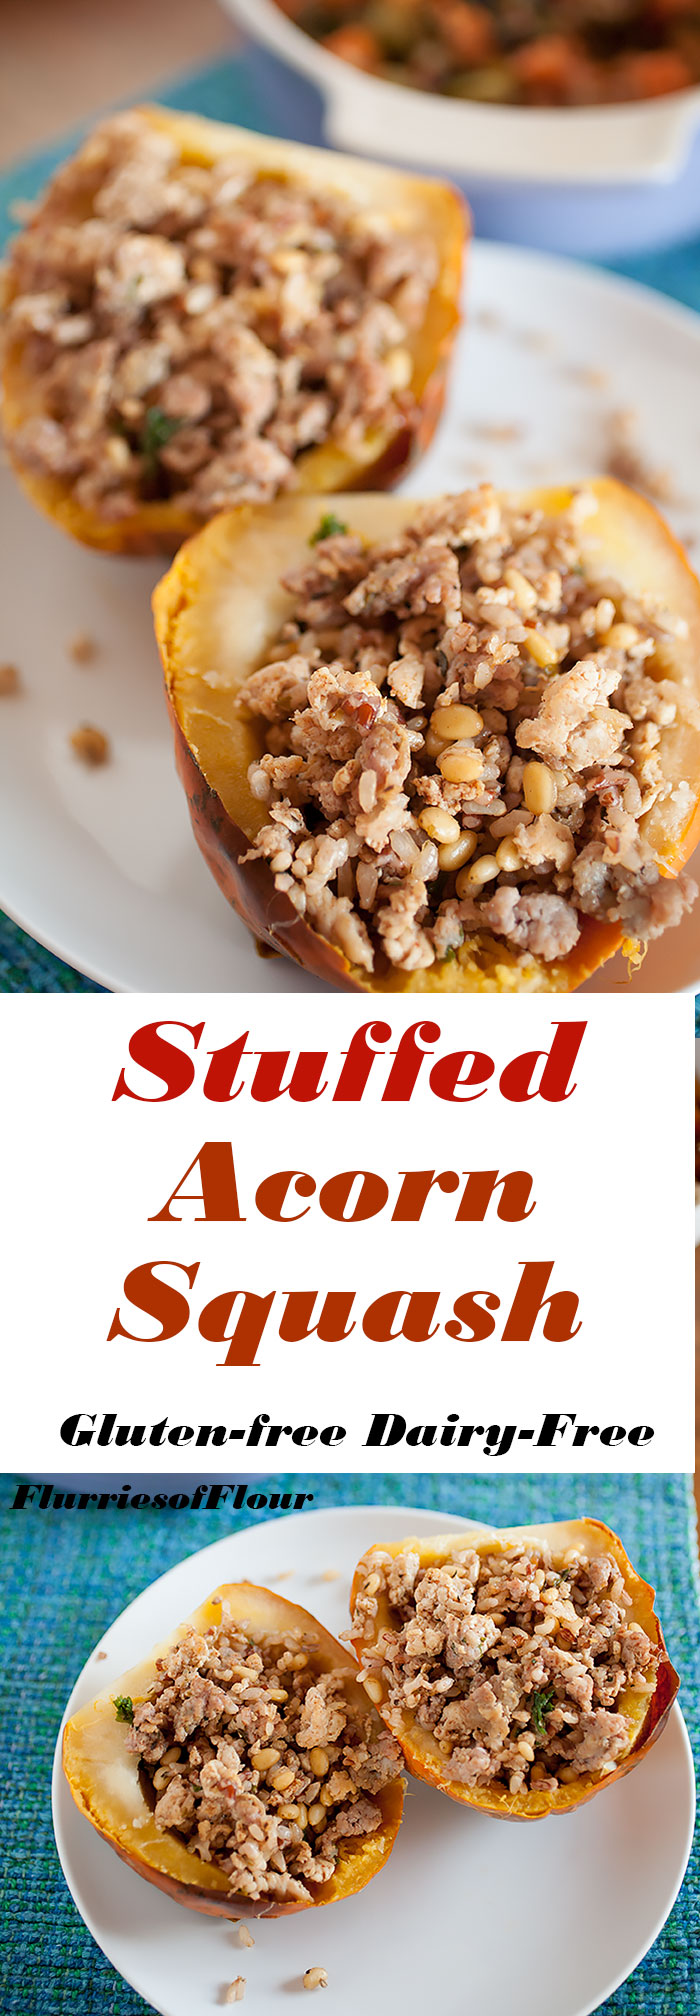 A simple, easy Thanksgiving side dish without much prep or time spent cooking! Acorn squash stuffed with savory sausage and turkey, rice, spice, and a bit of greens for a healthy crunch!